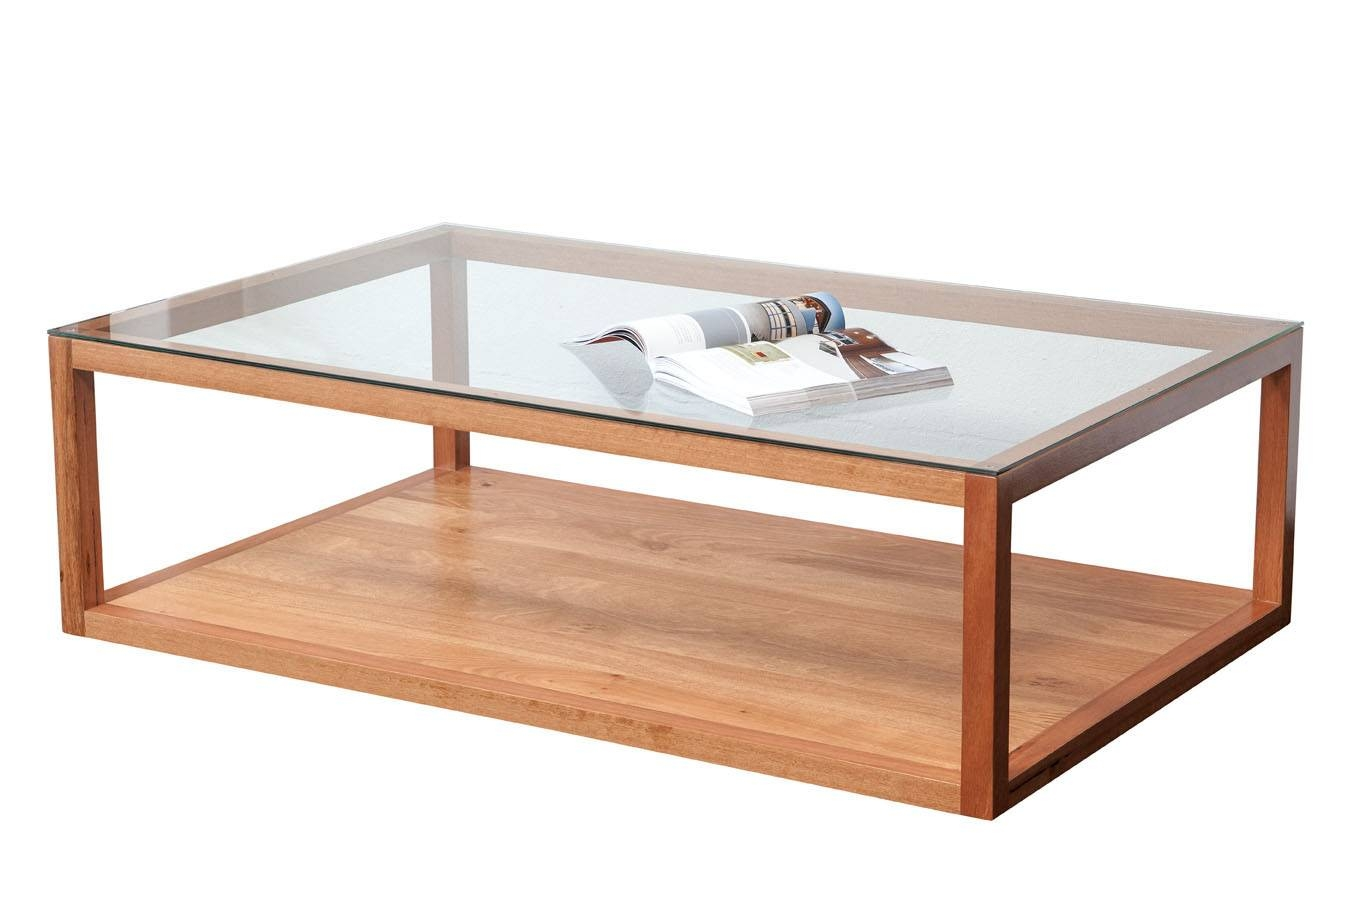 30 Collection Of Bespoke Coffee Tables